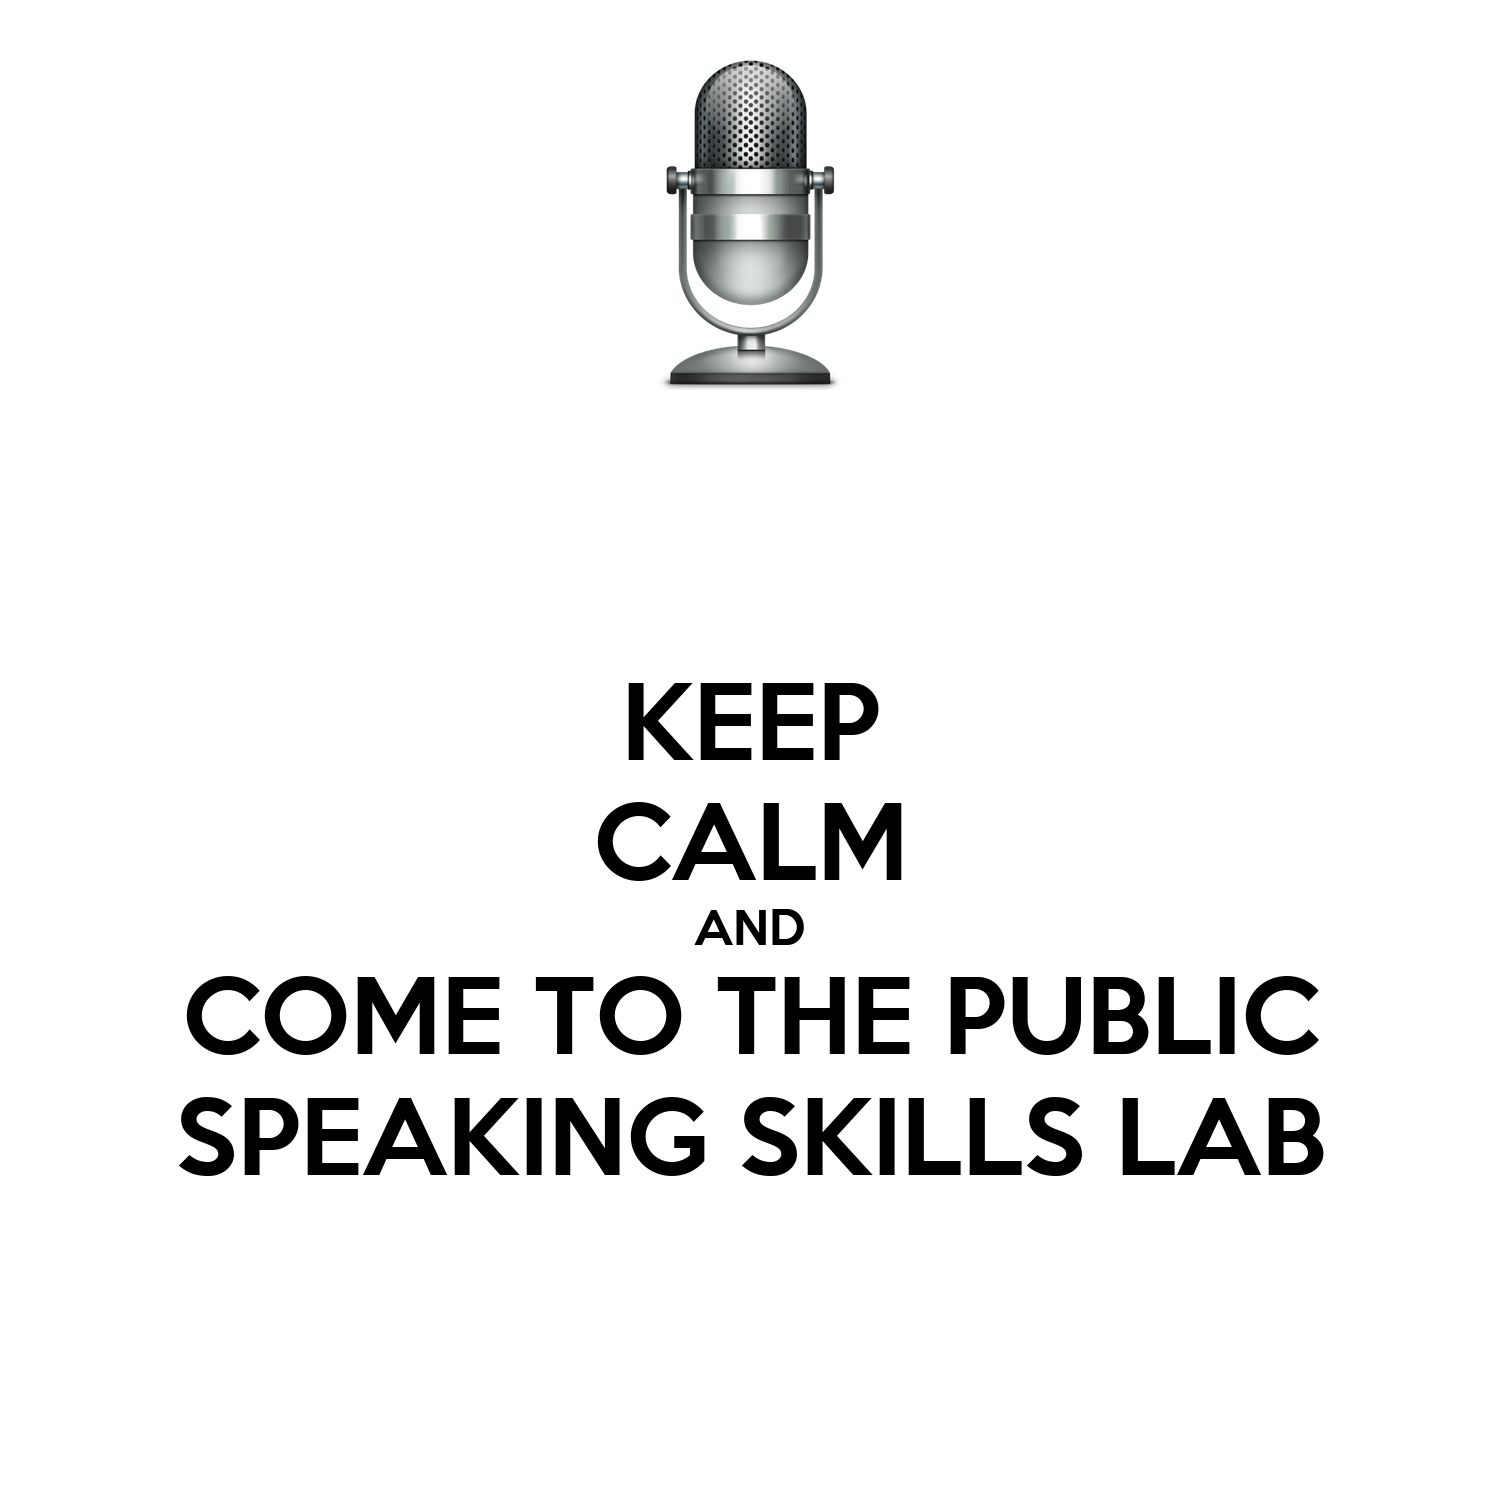 KEEP CALM AND COME TO THE PUBLIC SPEAKING SKILLS LAB